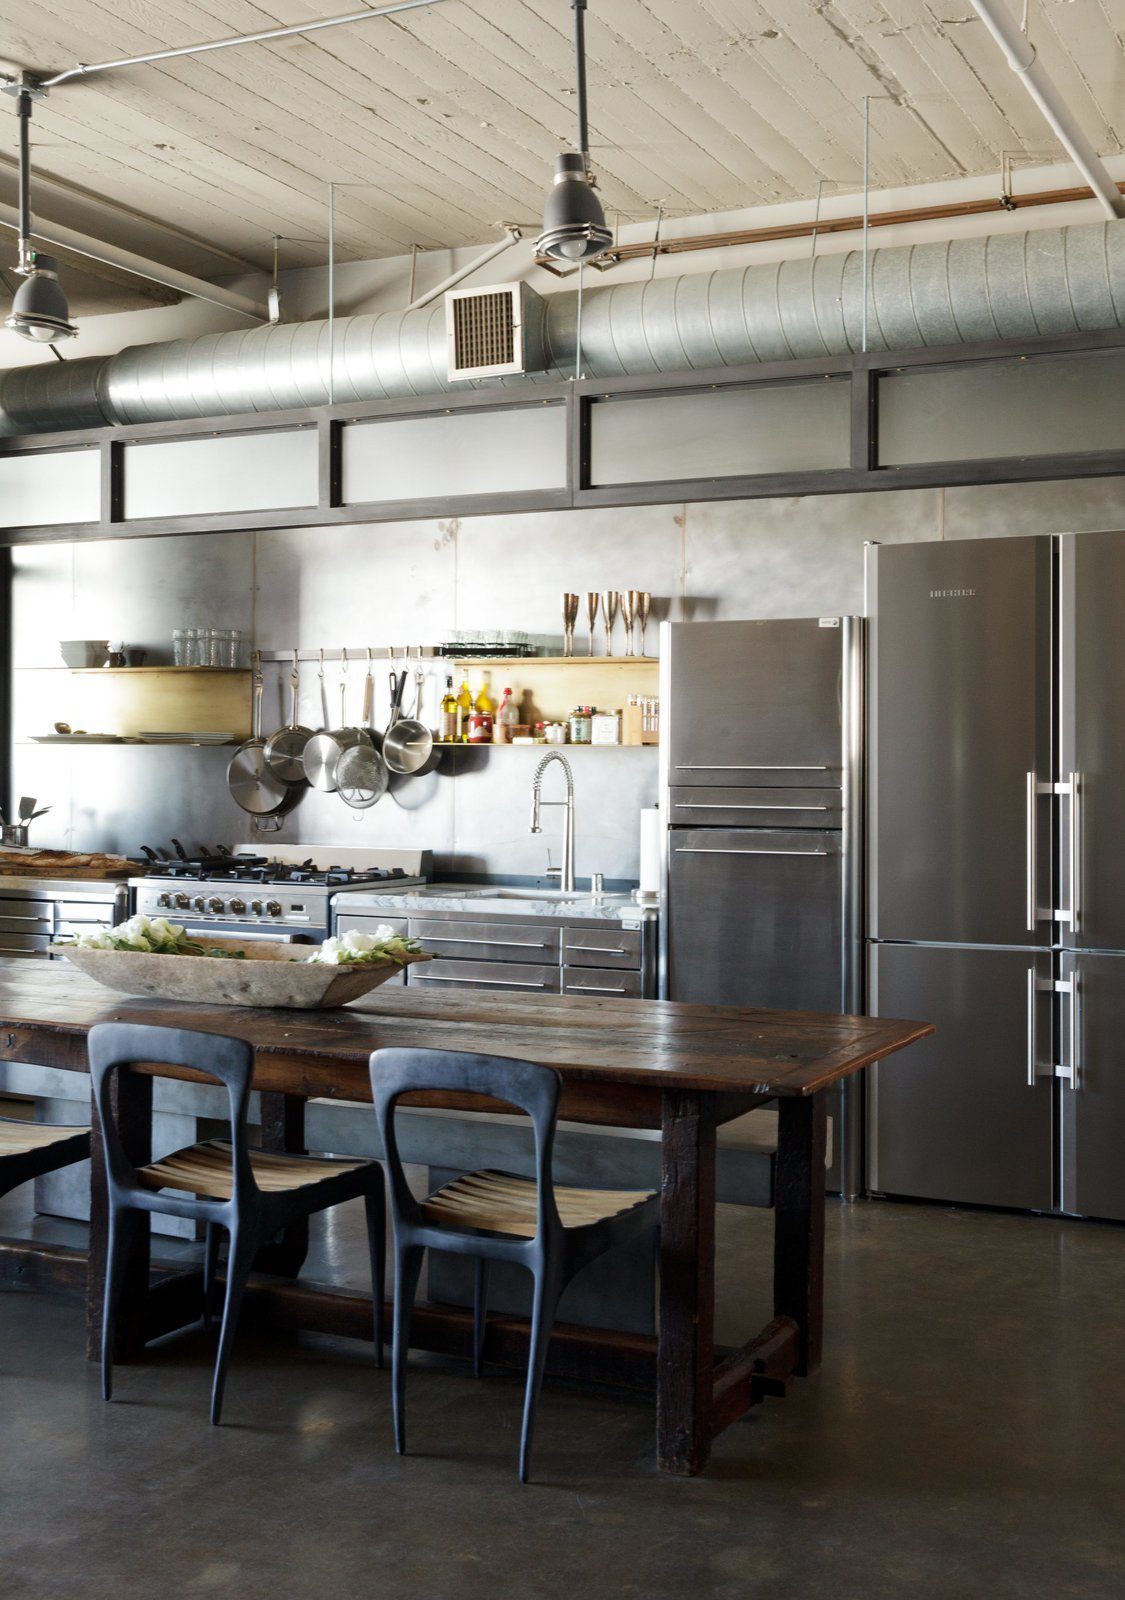 In a loft renovated by designer Andrea Michaelson, a Liebherr refrigerator blends in with stainless-steel cabinets from Fagor. Flow chairs by Henry Hall Designs and CB2 benches pull up to an antique farm table.  Photo 2 of 6 in Steel and Brass Cover Nearly Every Surface of this Industrial L.A. Kitchen